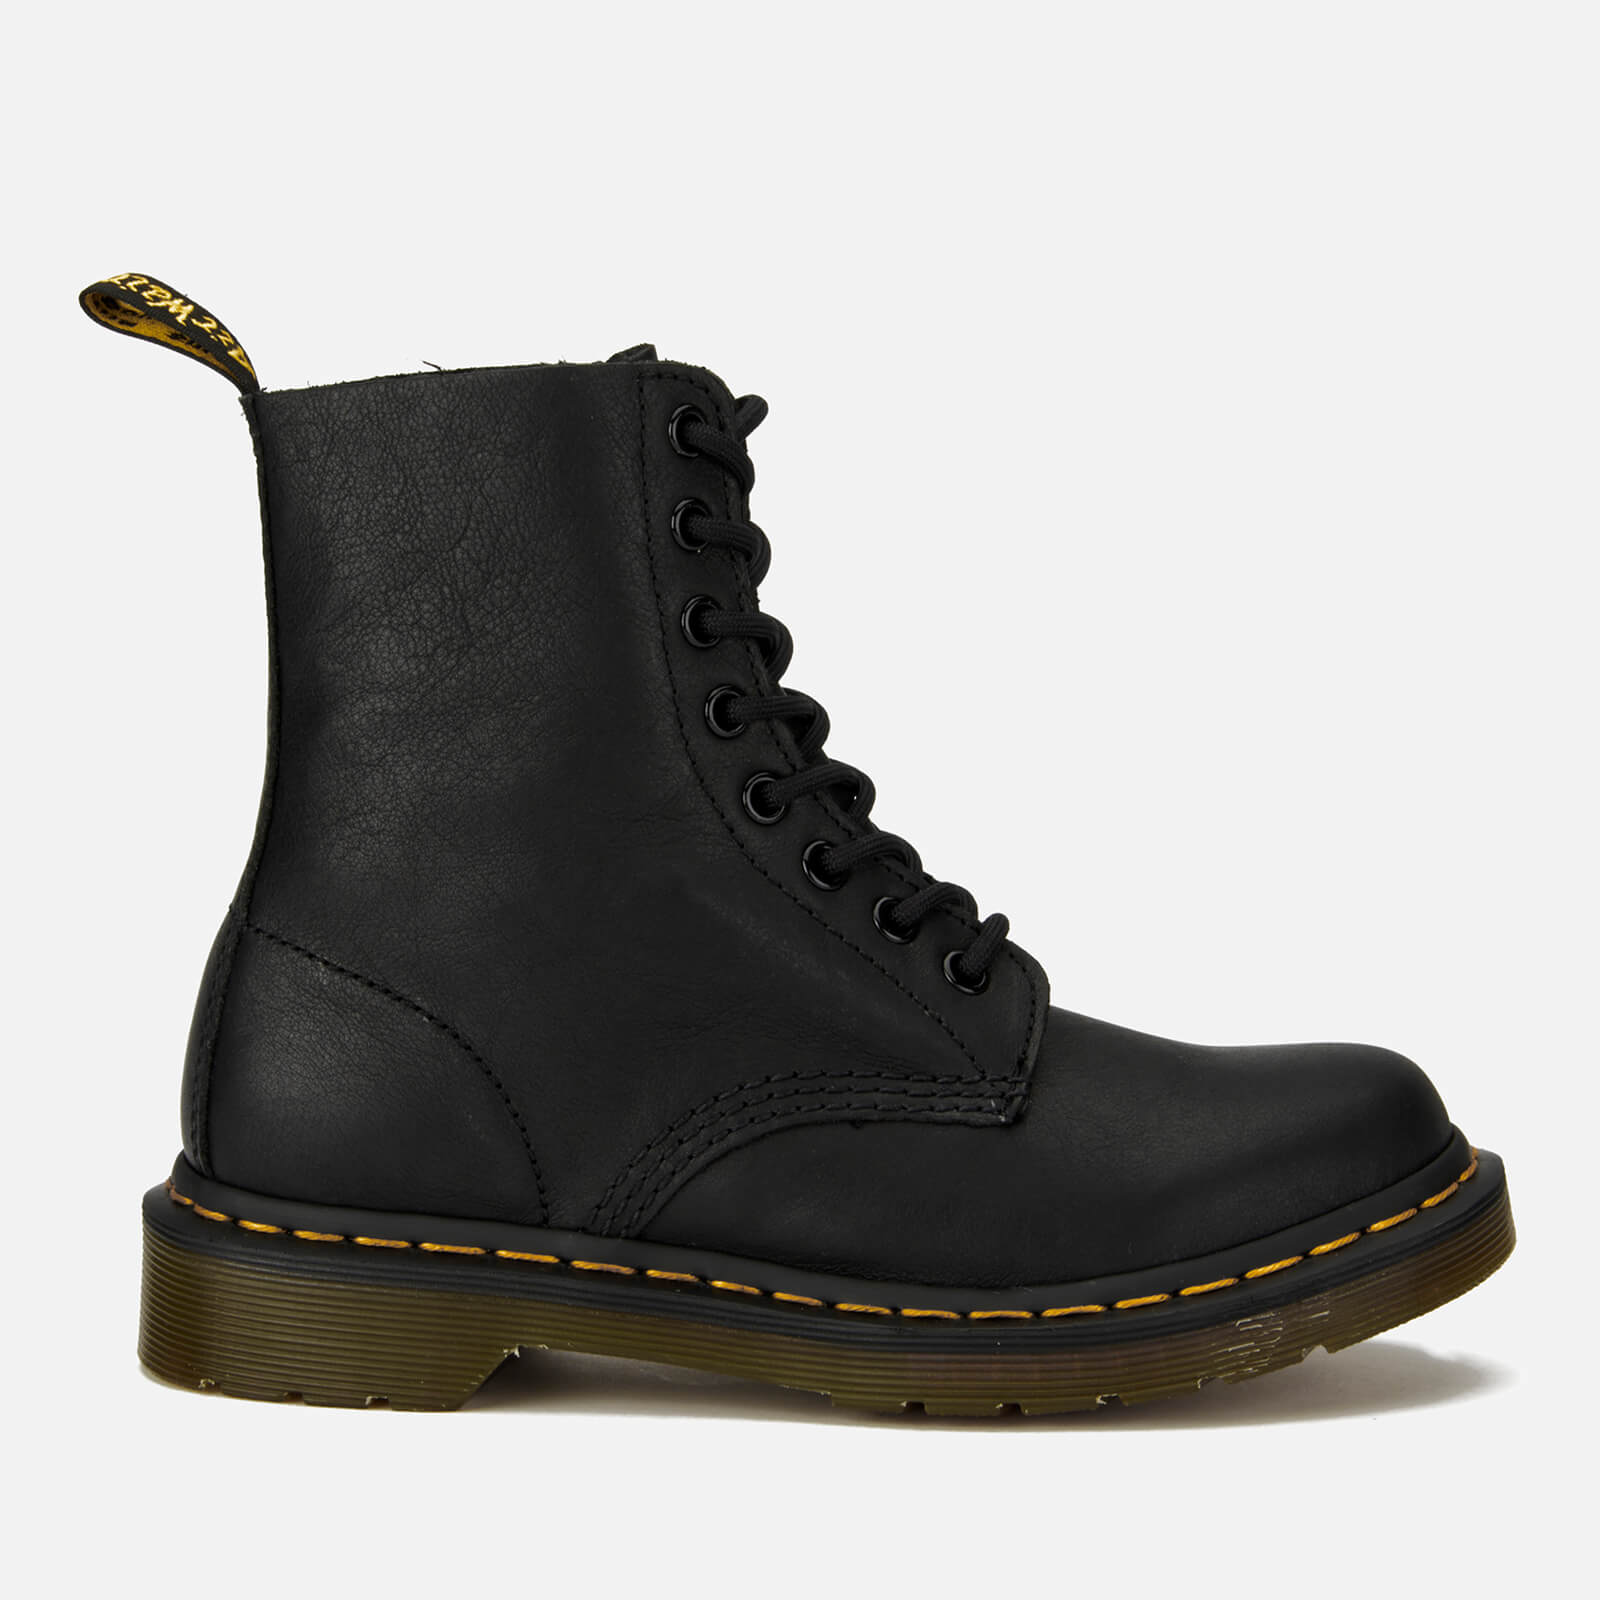 Dr. Martens Women's 1460 Pascal Virginia Leather 8-Eye Boots - Black - UK 8 - Black from Dr. Martens